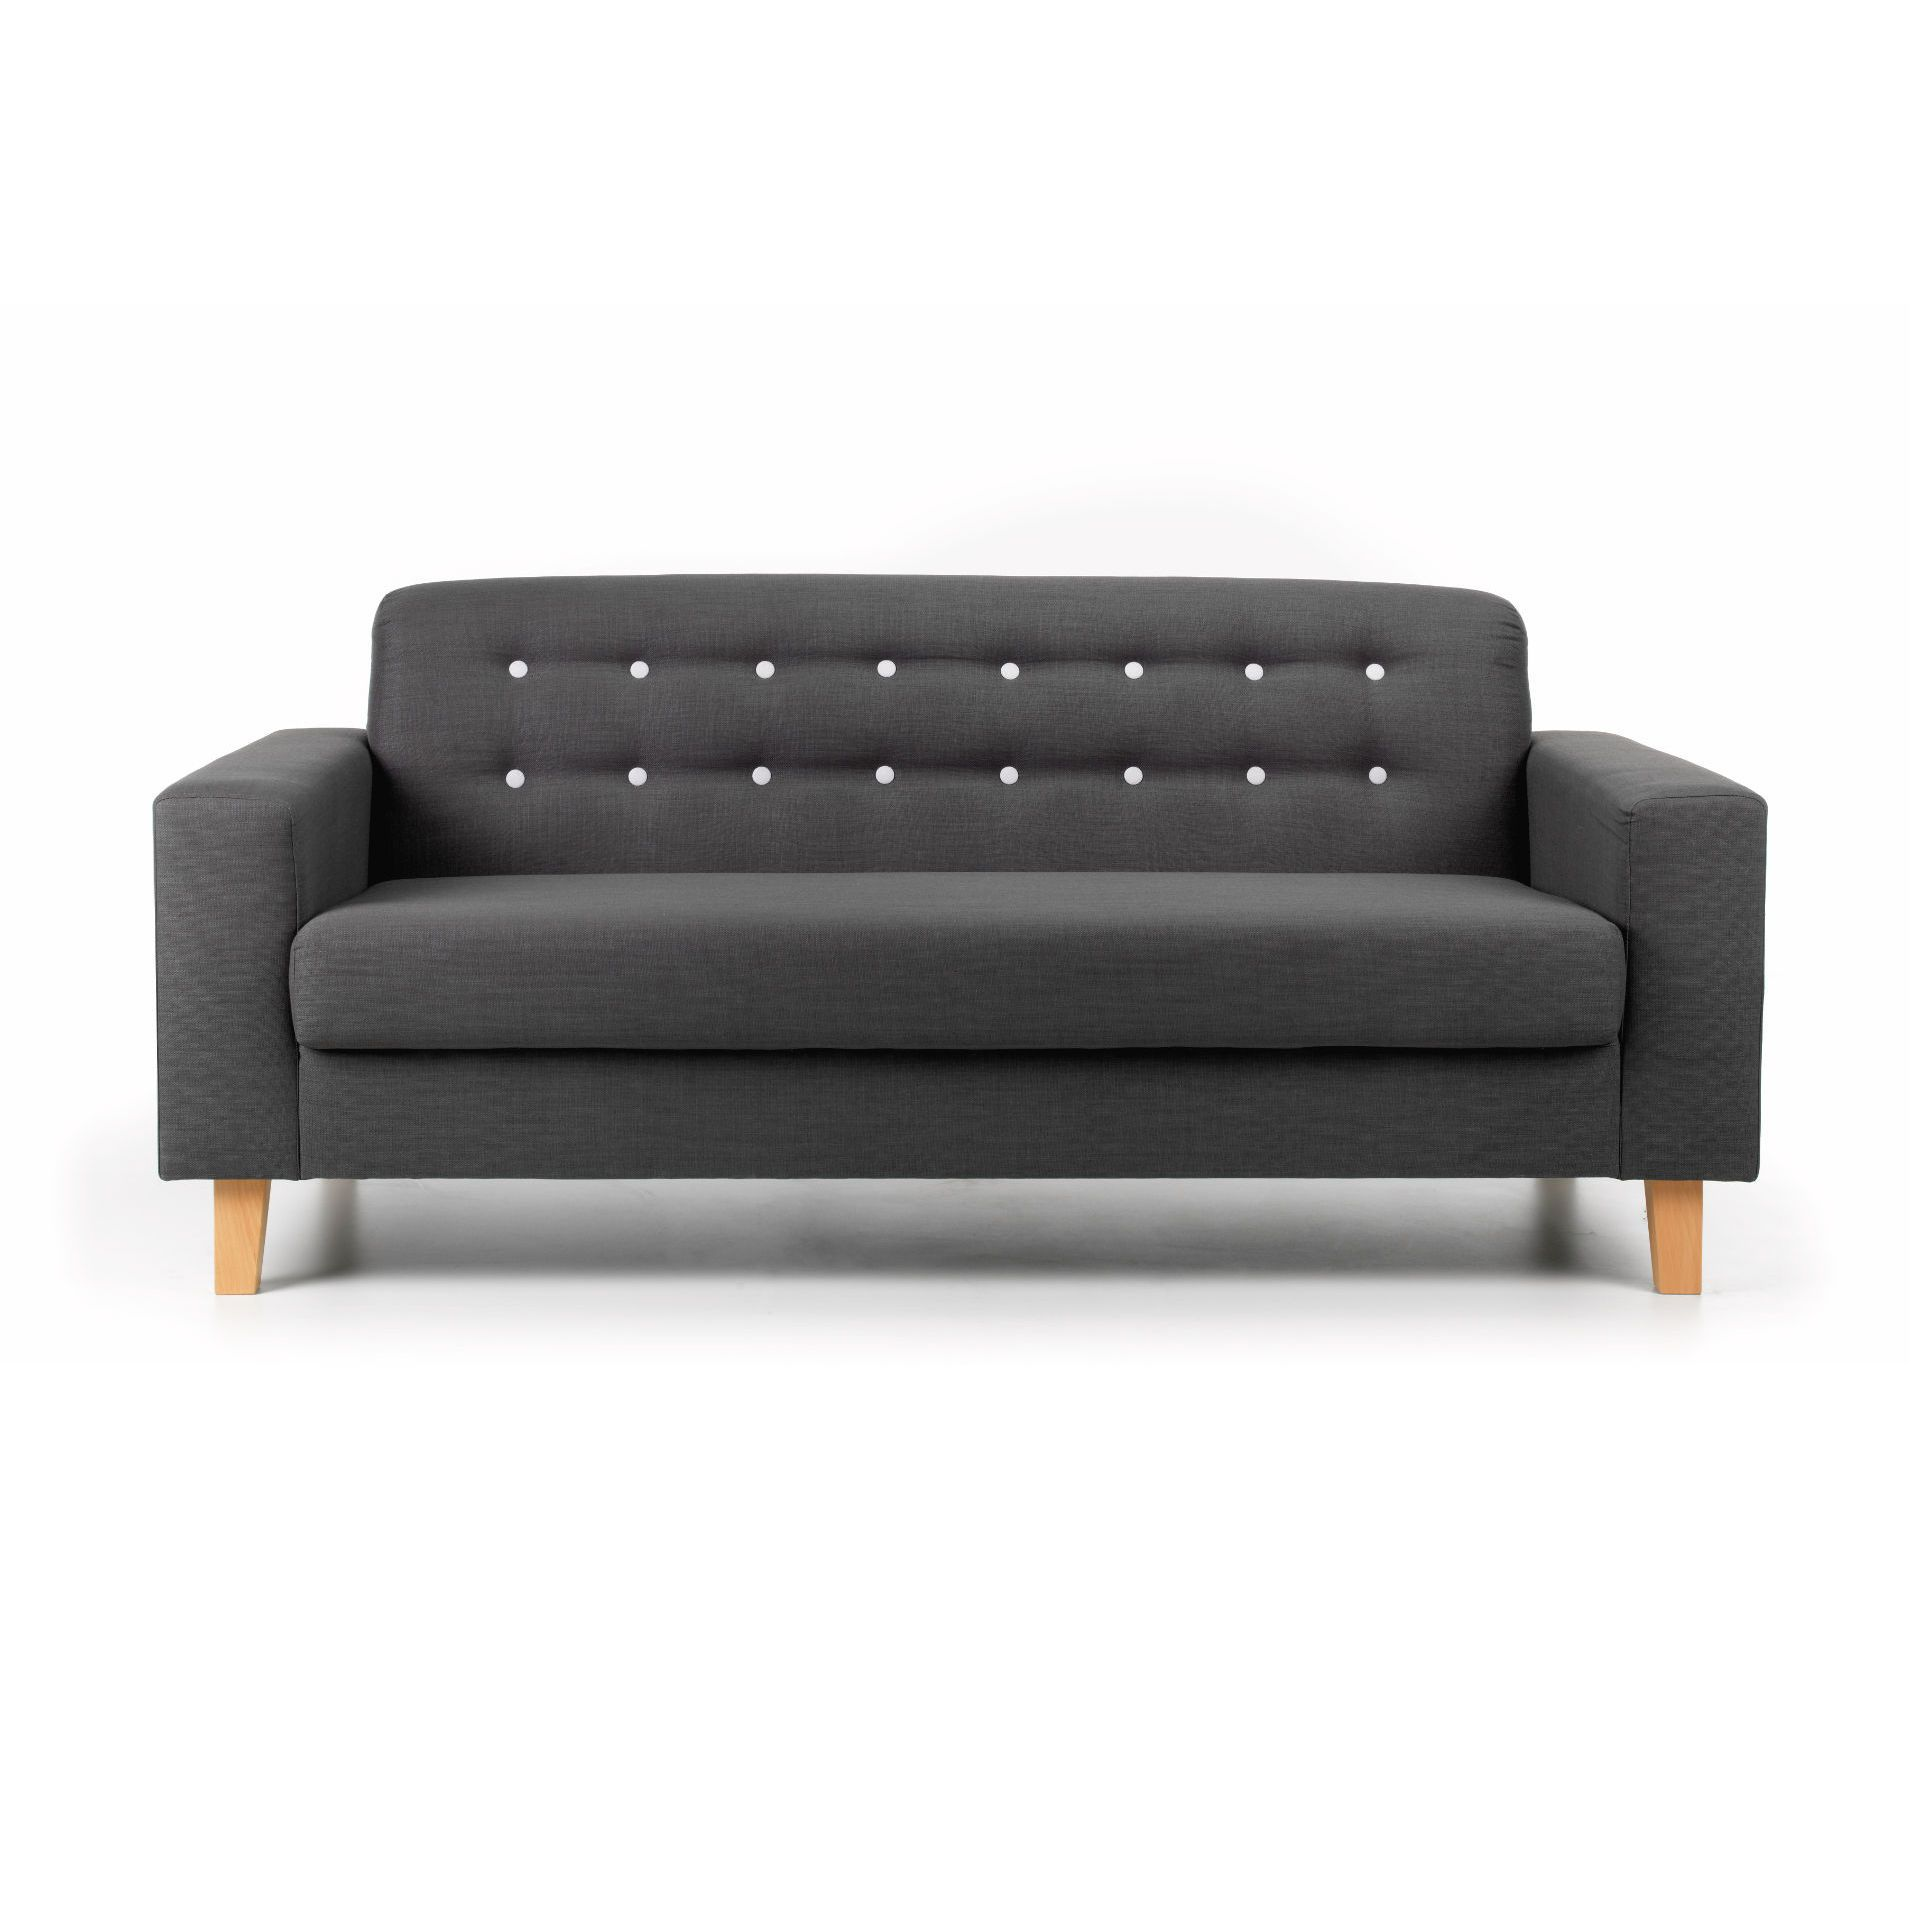 Healy 3 Seater Sofa Next Day Delivery